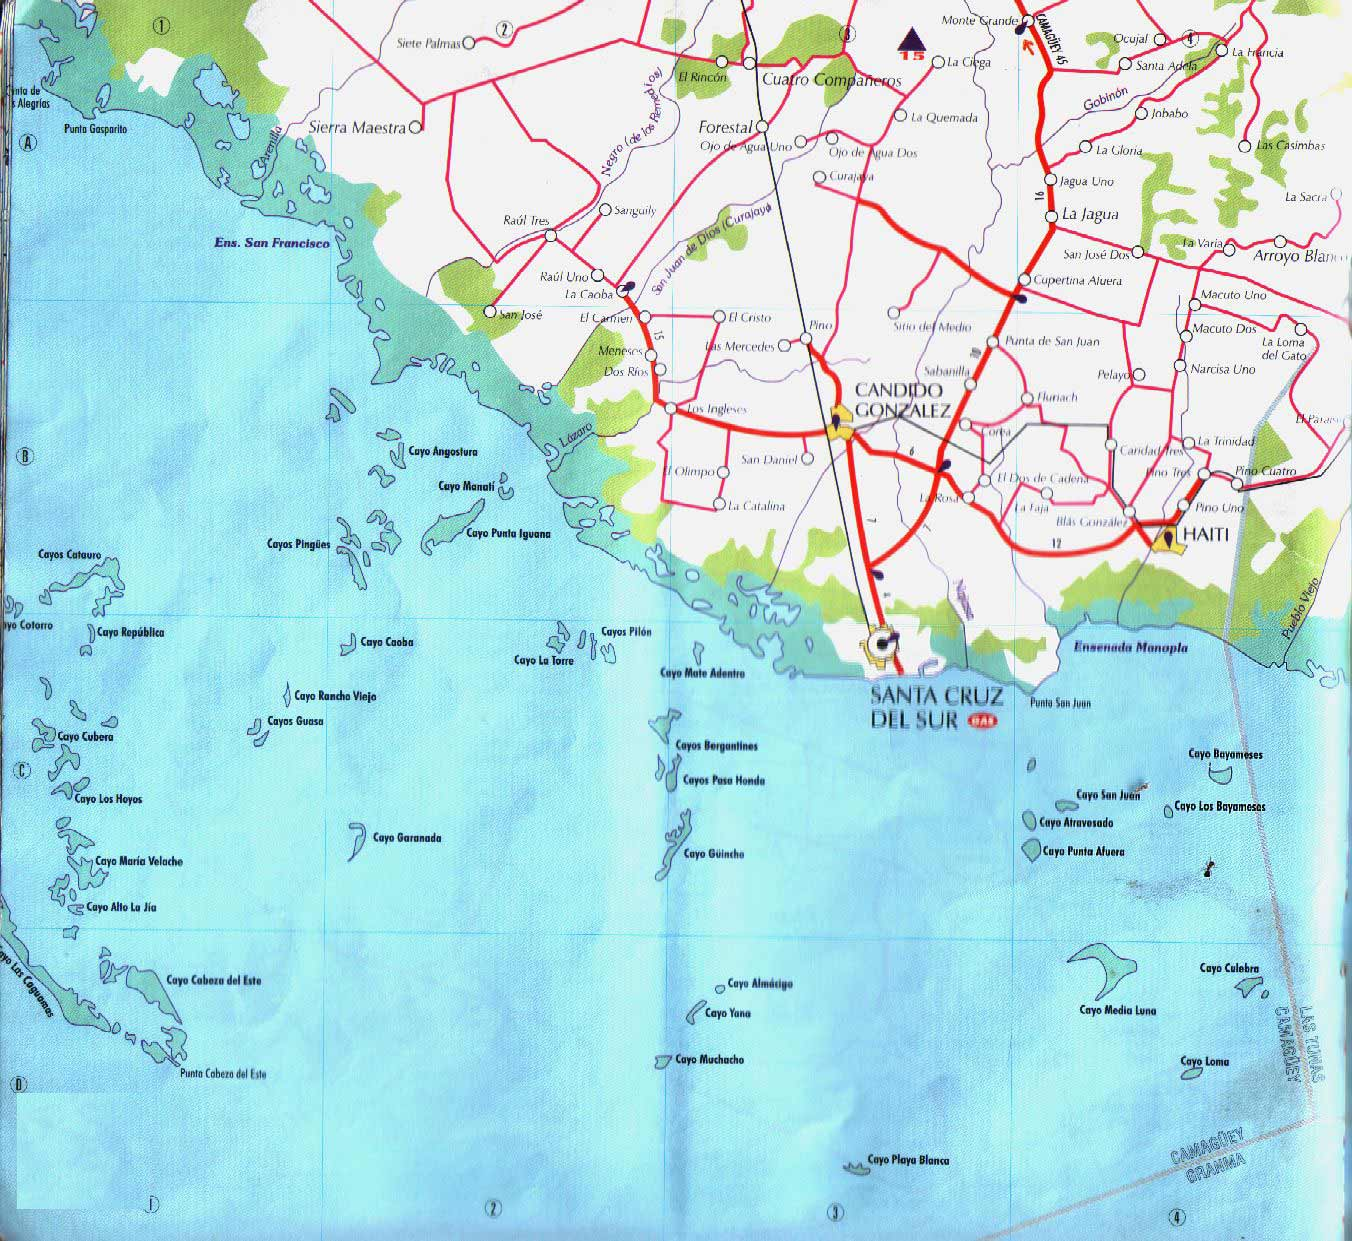 Map of Santa Cruz Del Sur Candido Gonzalez